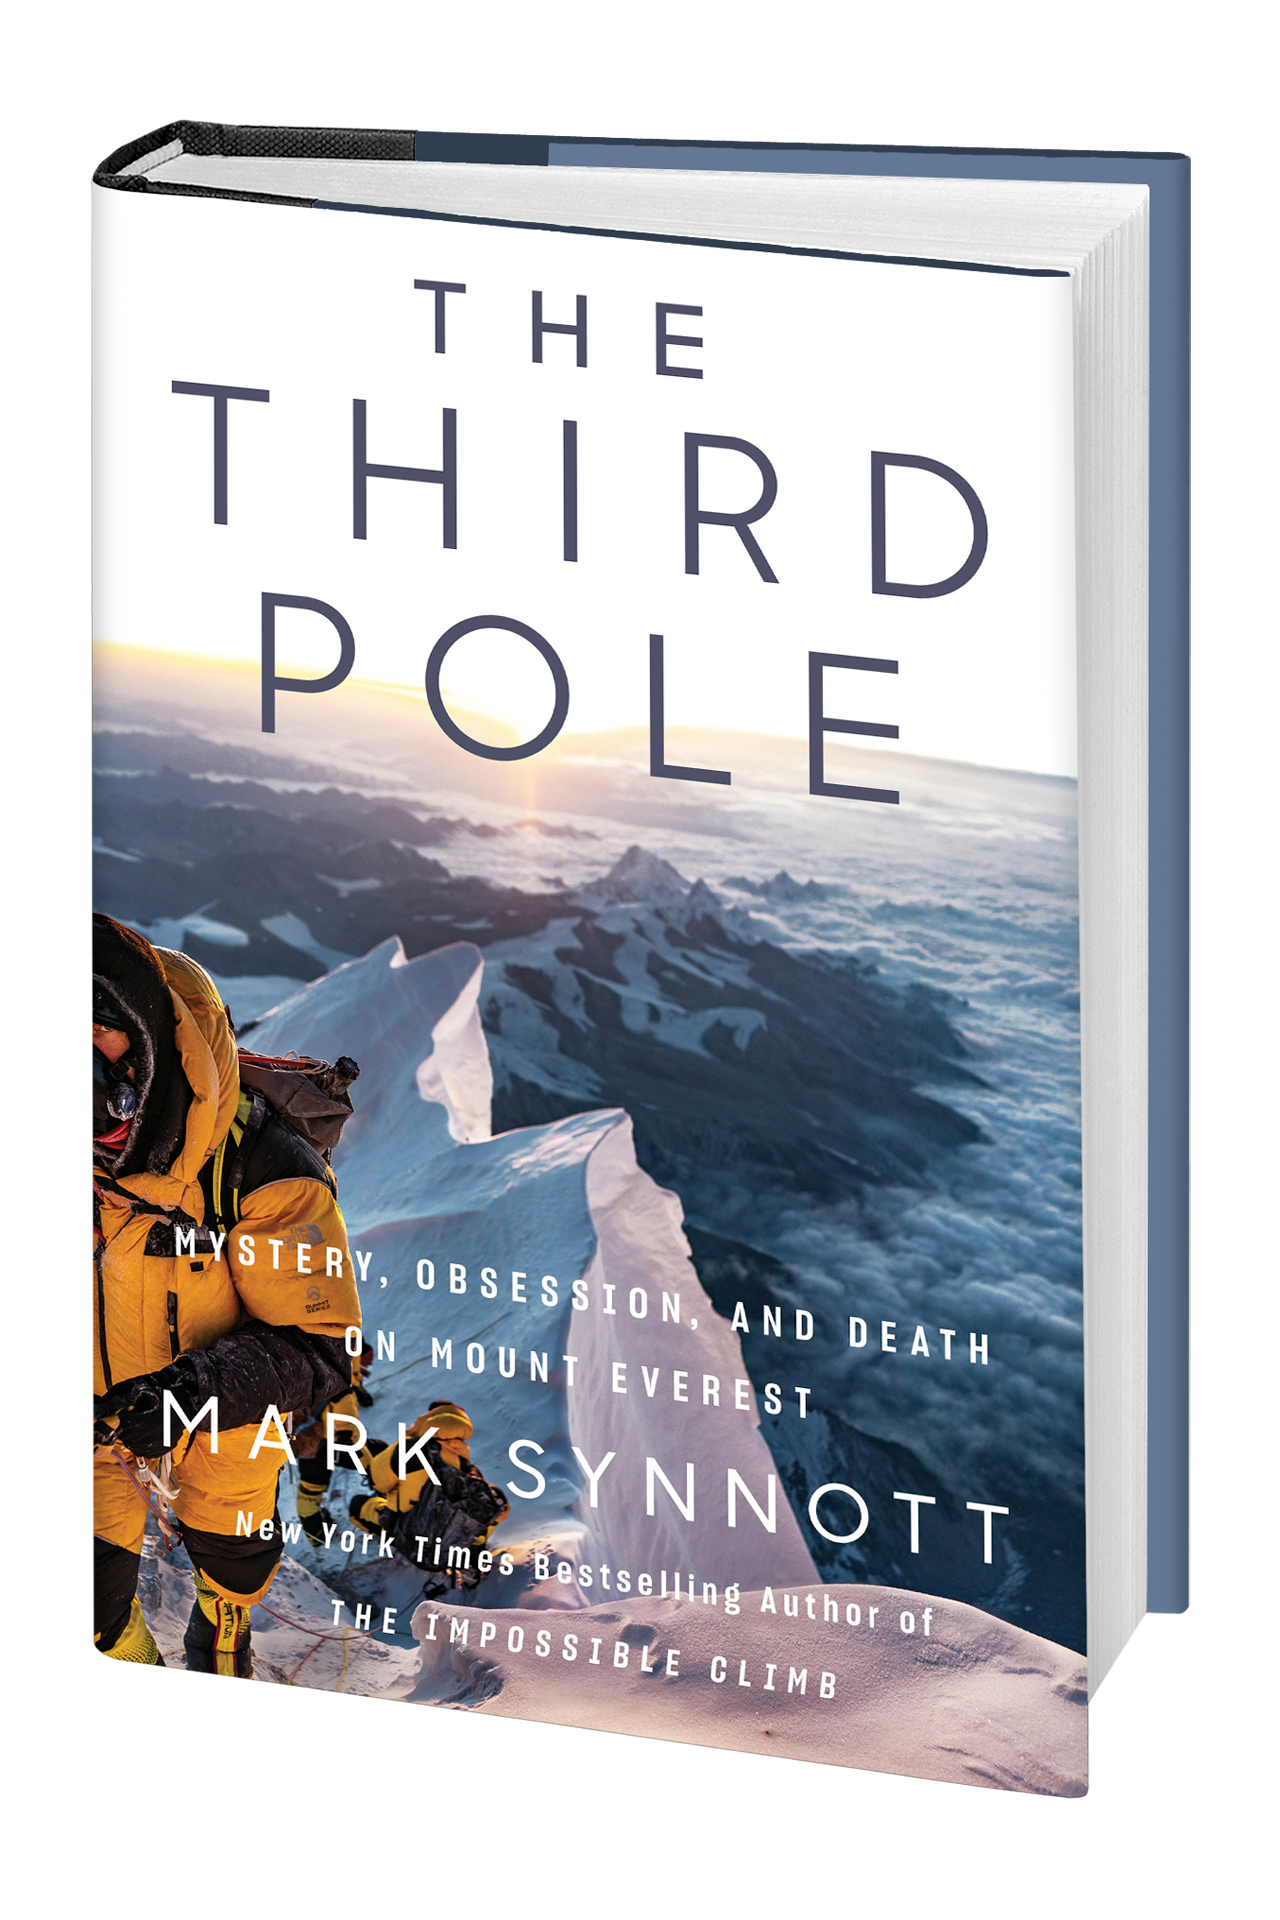 The Third Pole by Mark Synnott